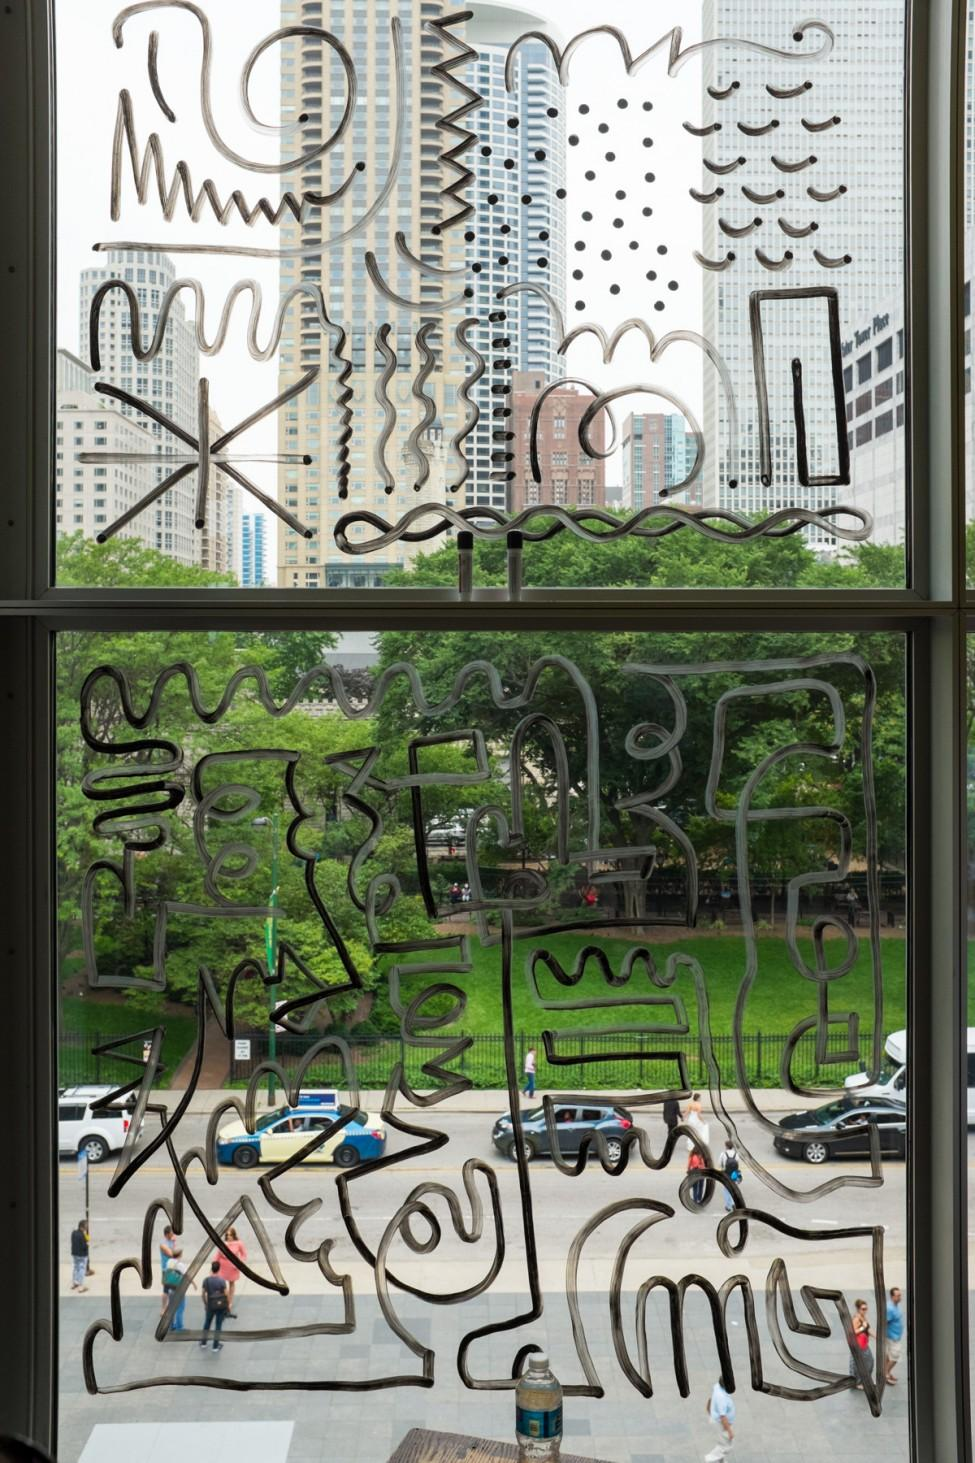 Various doodles in black marker appear on a window which looks out onto a lush park and tall buildings.